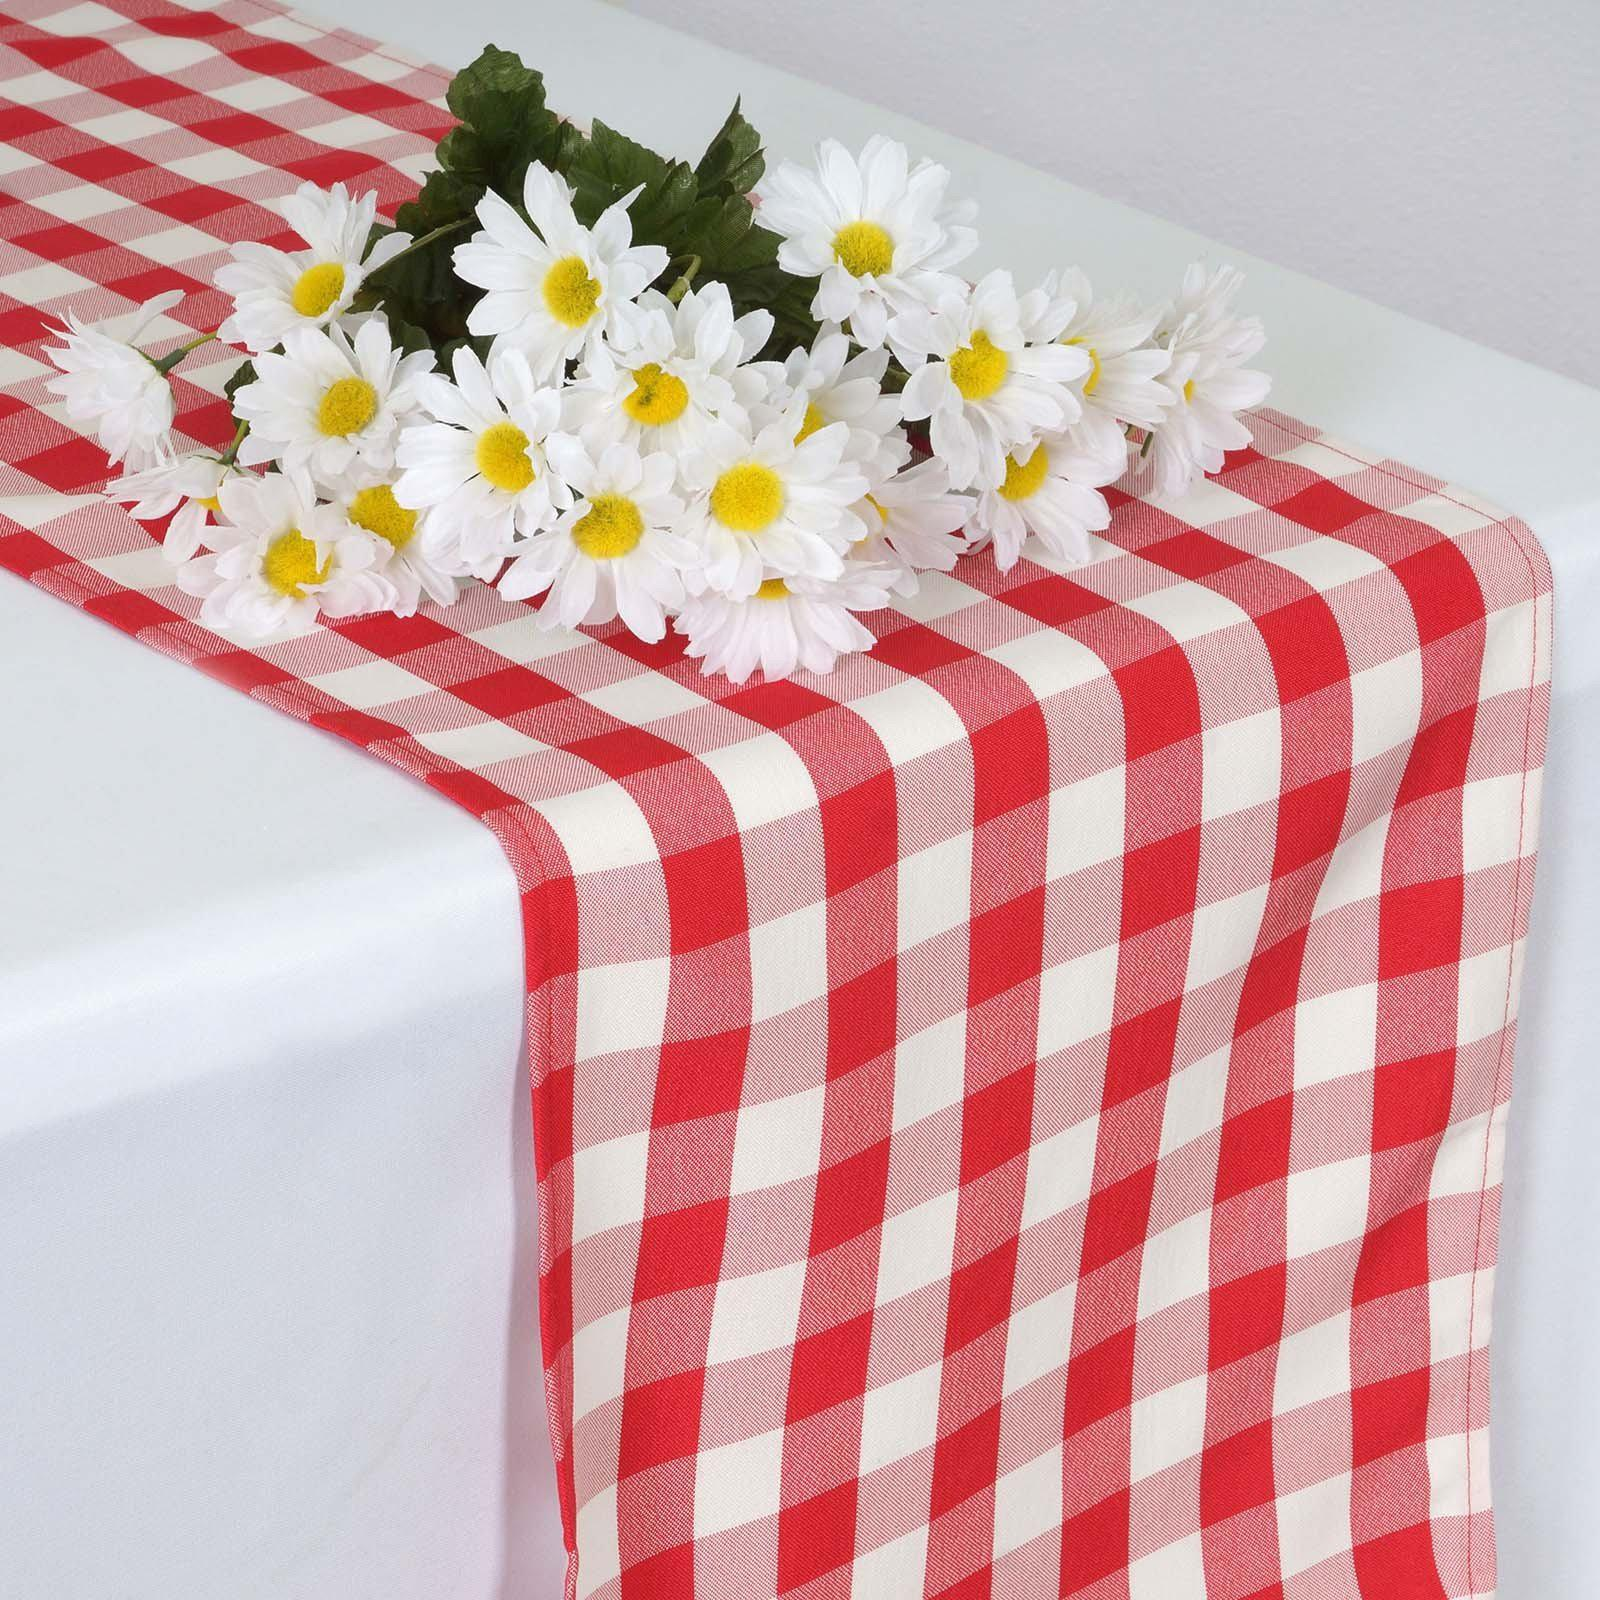 X Seamless Gingham Checkered Polyester Table Runner White - Wholesale table tops